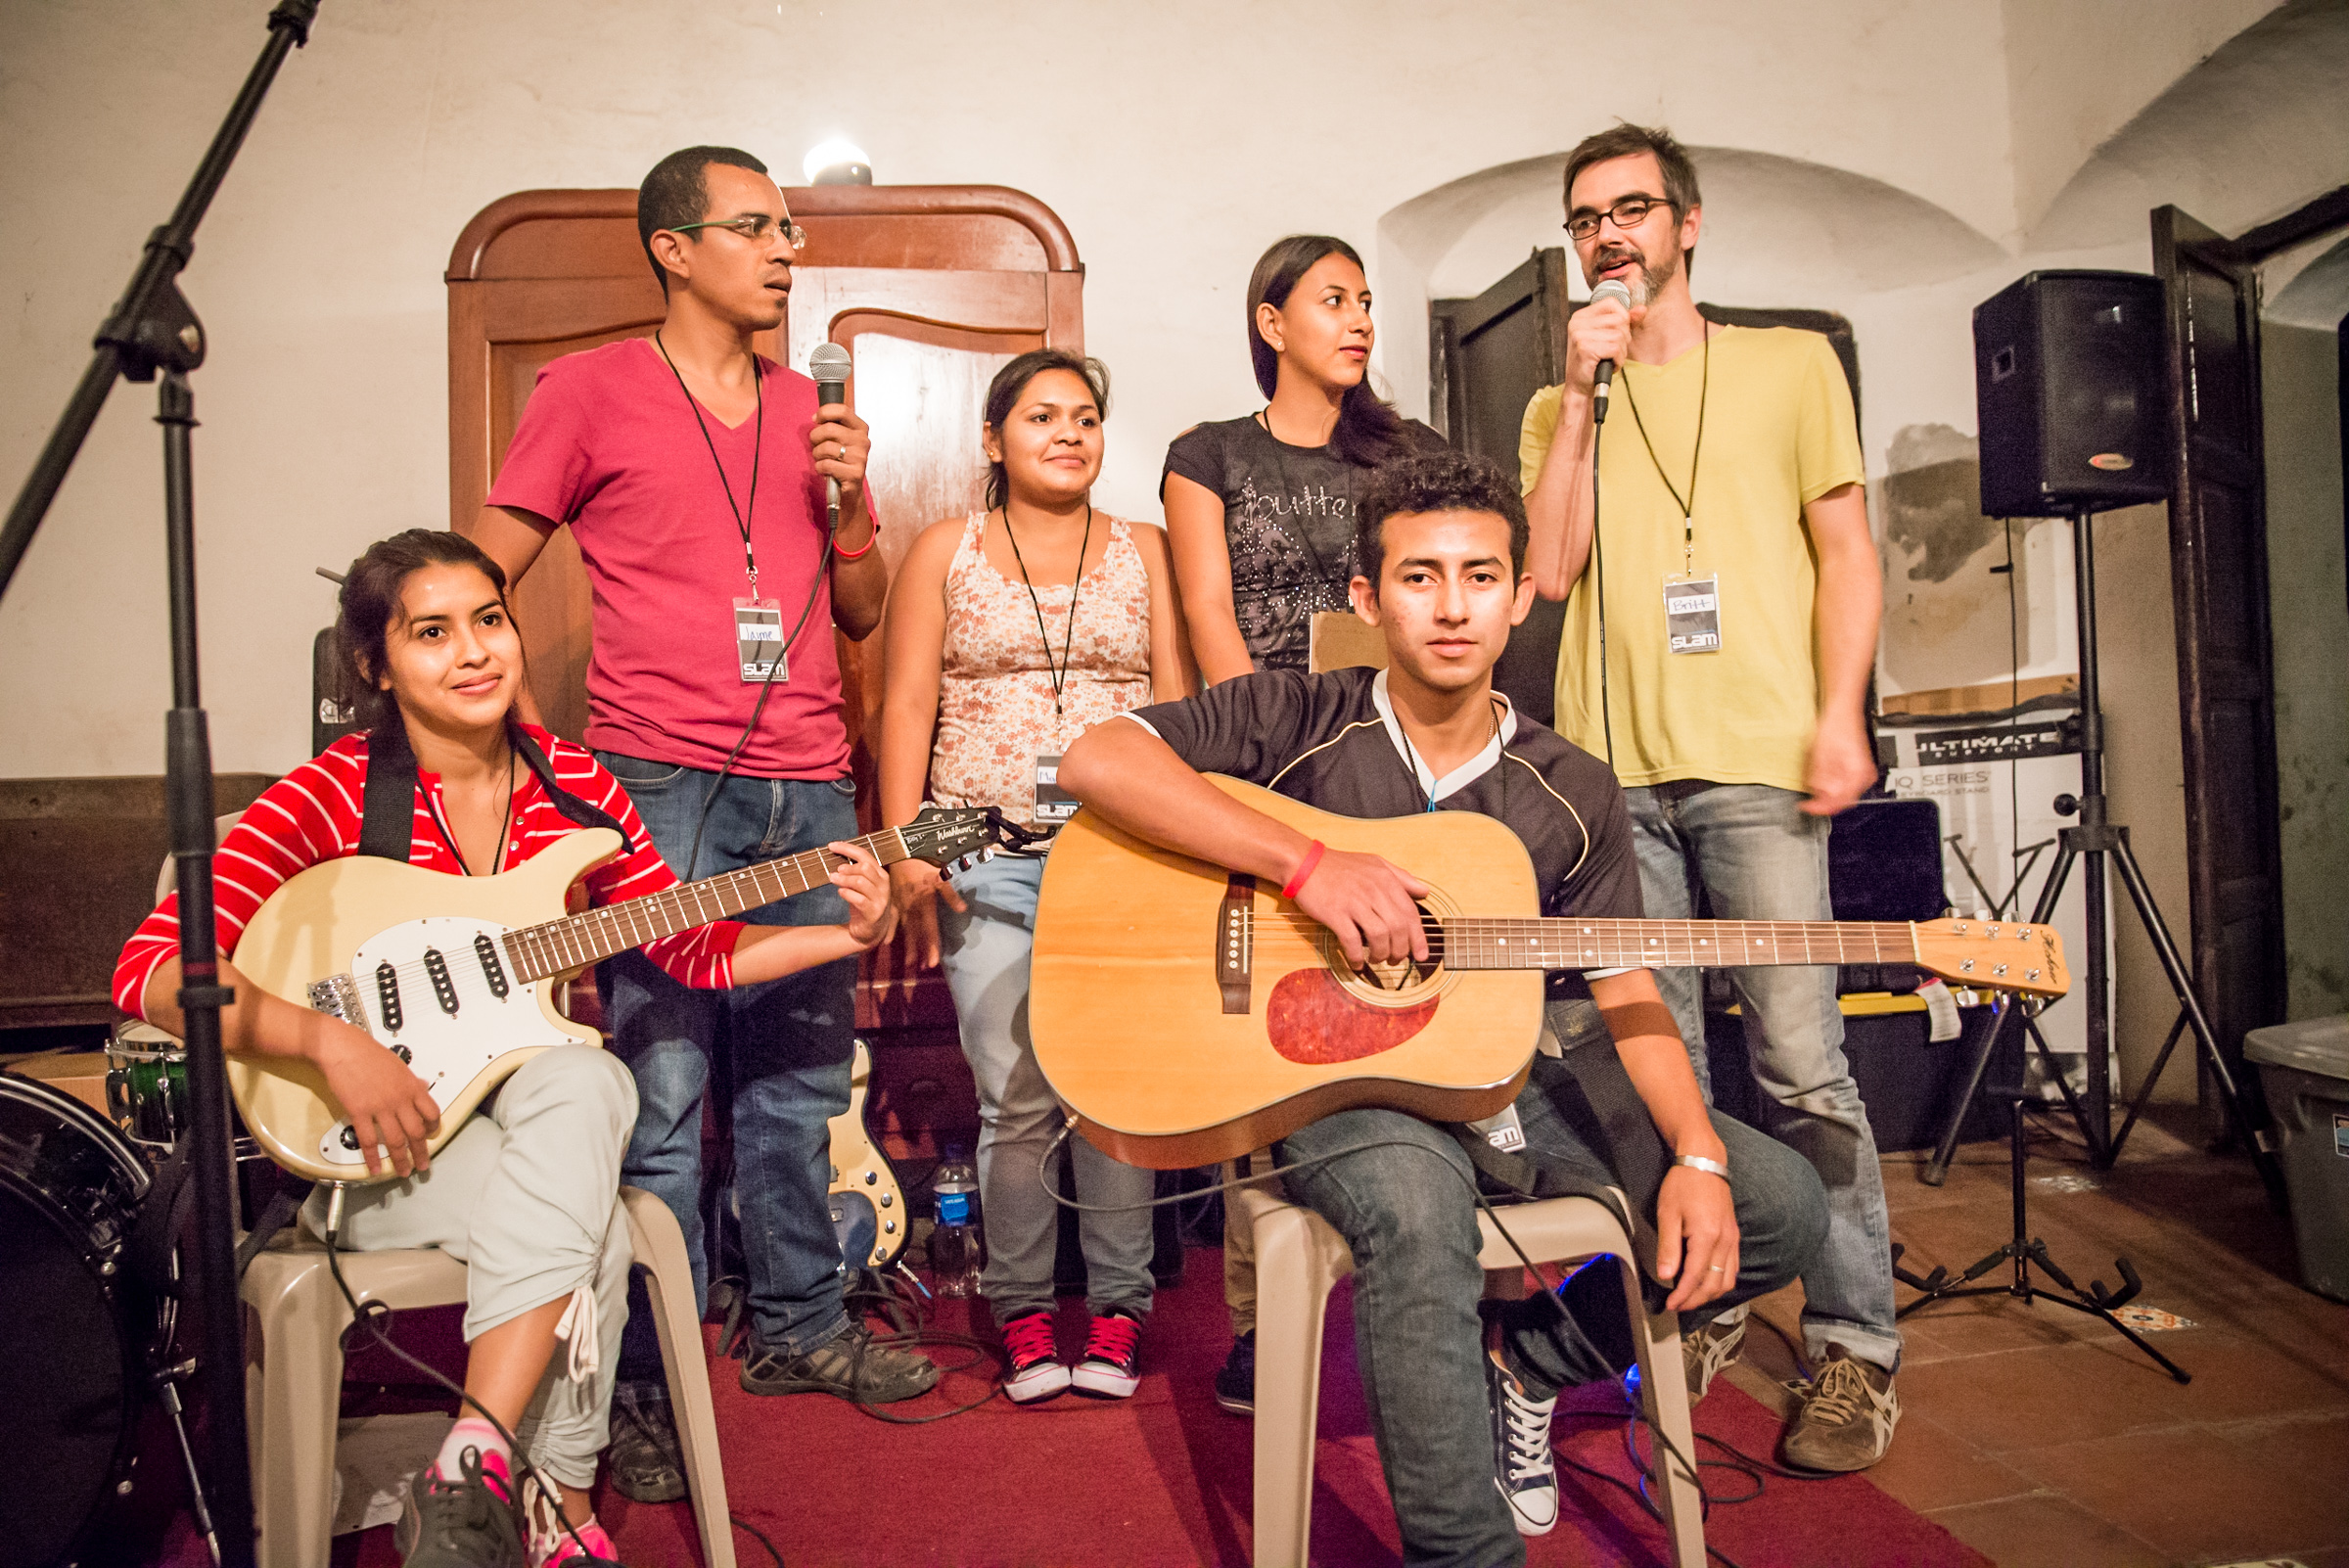 During the music seminar in El Salvador in December, Britt Edwards instructed the students in songwriting and guitar. Here, he and his students, who had never even touched a guitar before, performed, and later recorded the song they wrote.